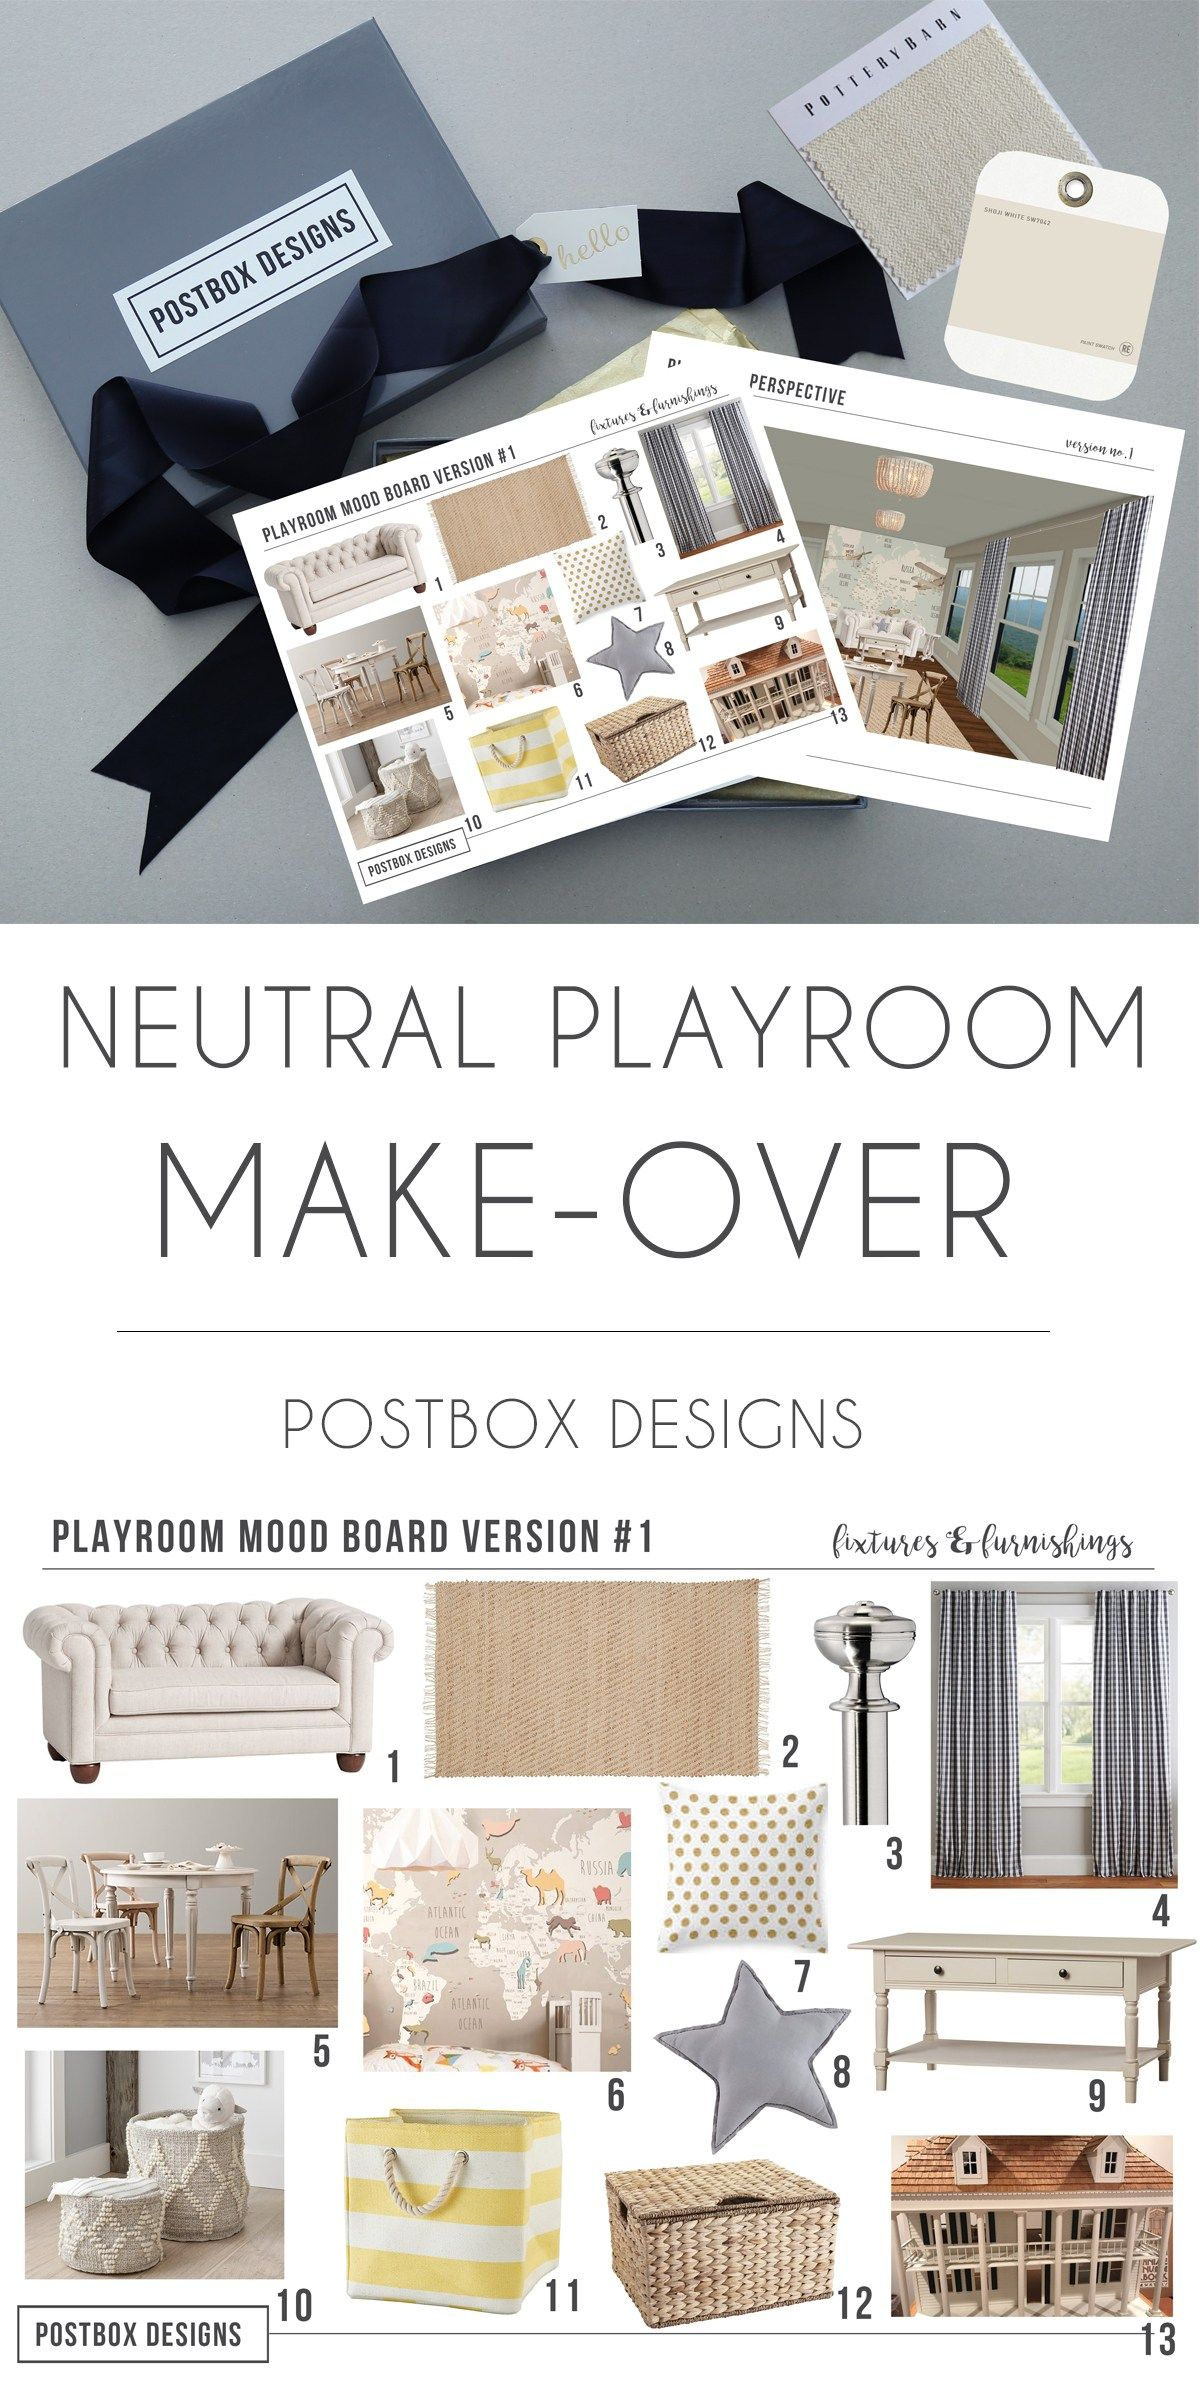 10 Playroom Must Haves + 6 Items Not To Waste Your Money On